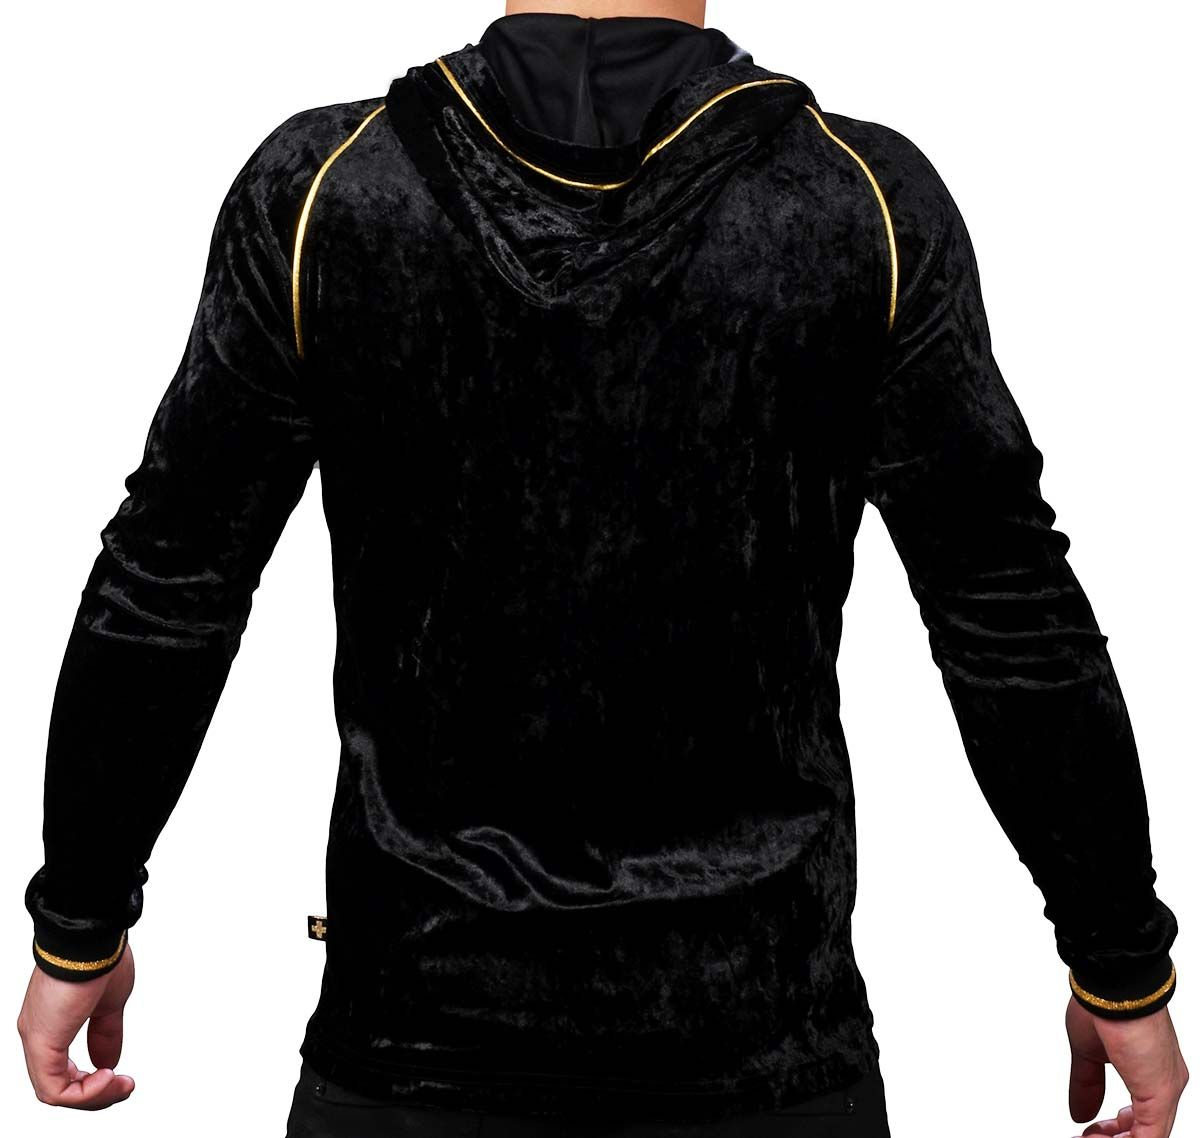 Andrew Christian Chaqueta con capucha MIDNIGHT HOODIE w/ GOLD LOGO CHARM 5143, negro